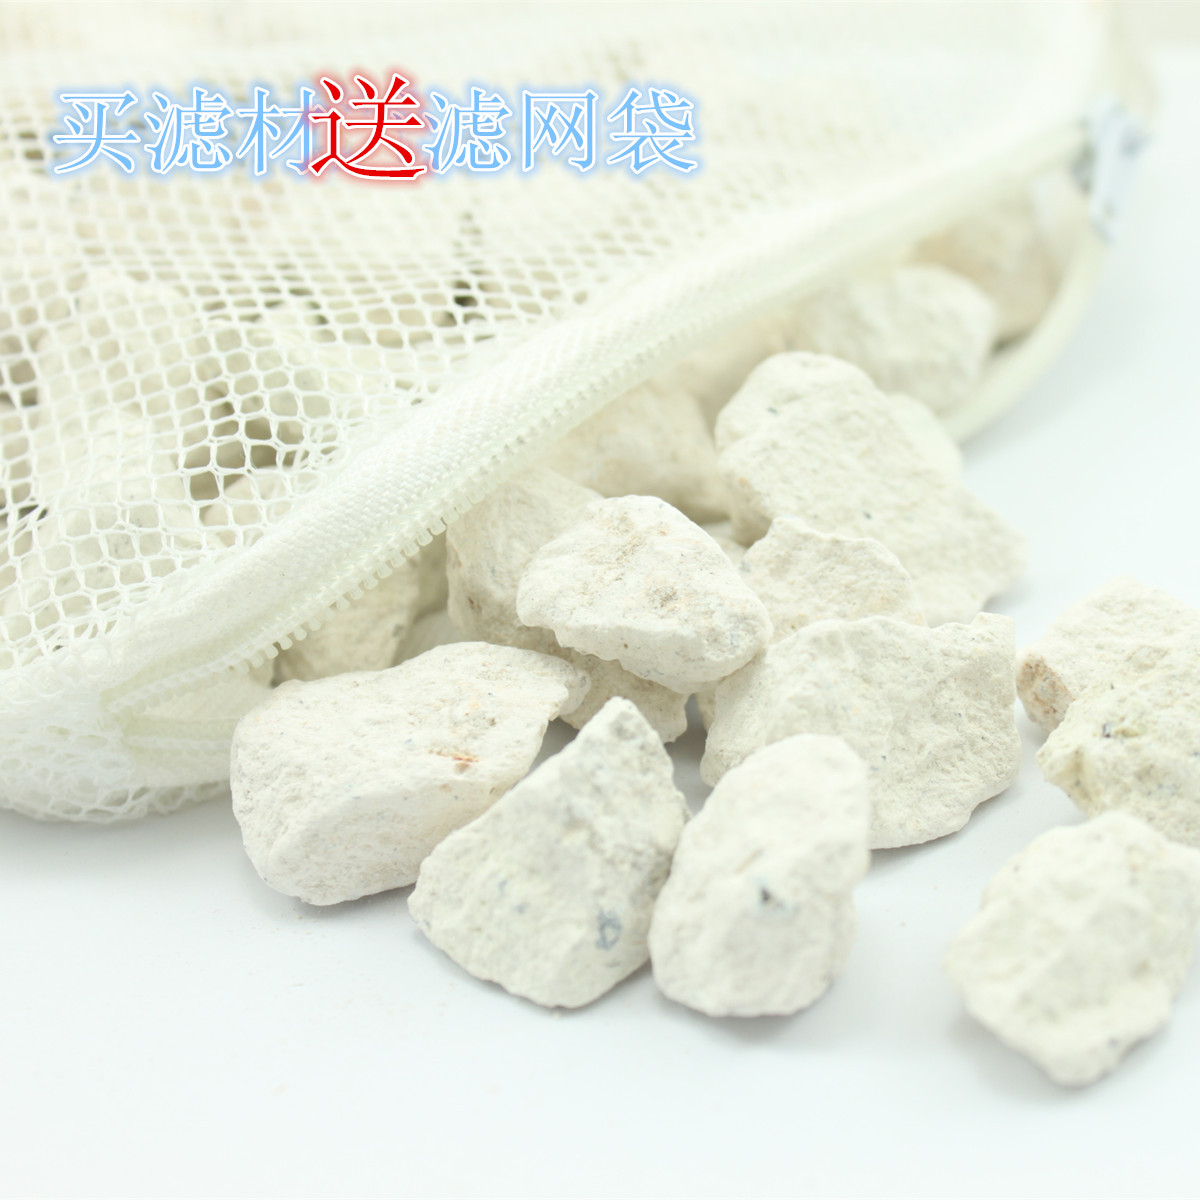 Spiritual point adsorption potent purifier filter water ammonia ammonia absorption zeolite filter material a4350g send mesh bag